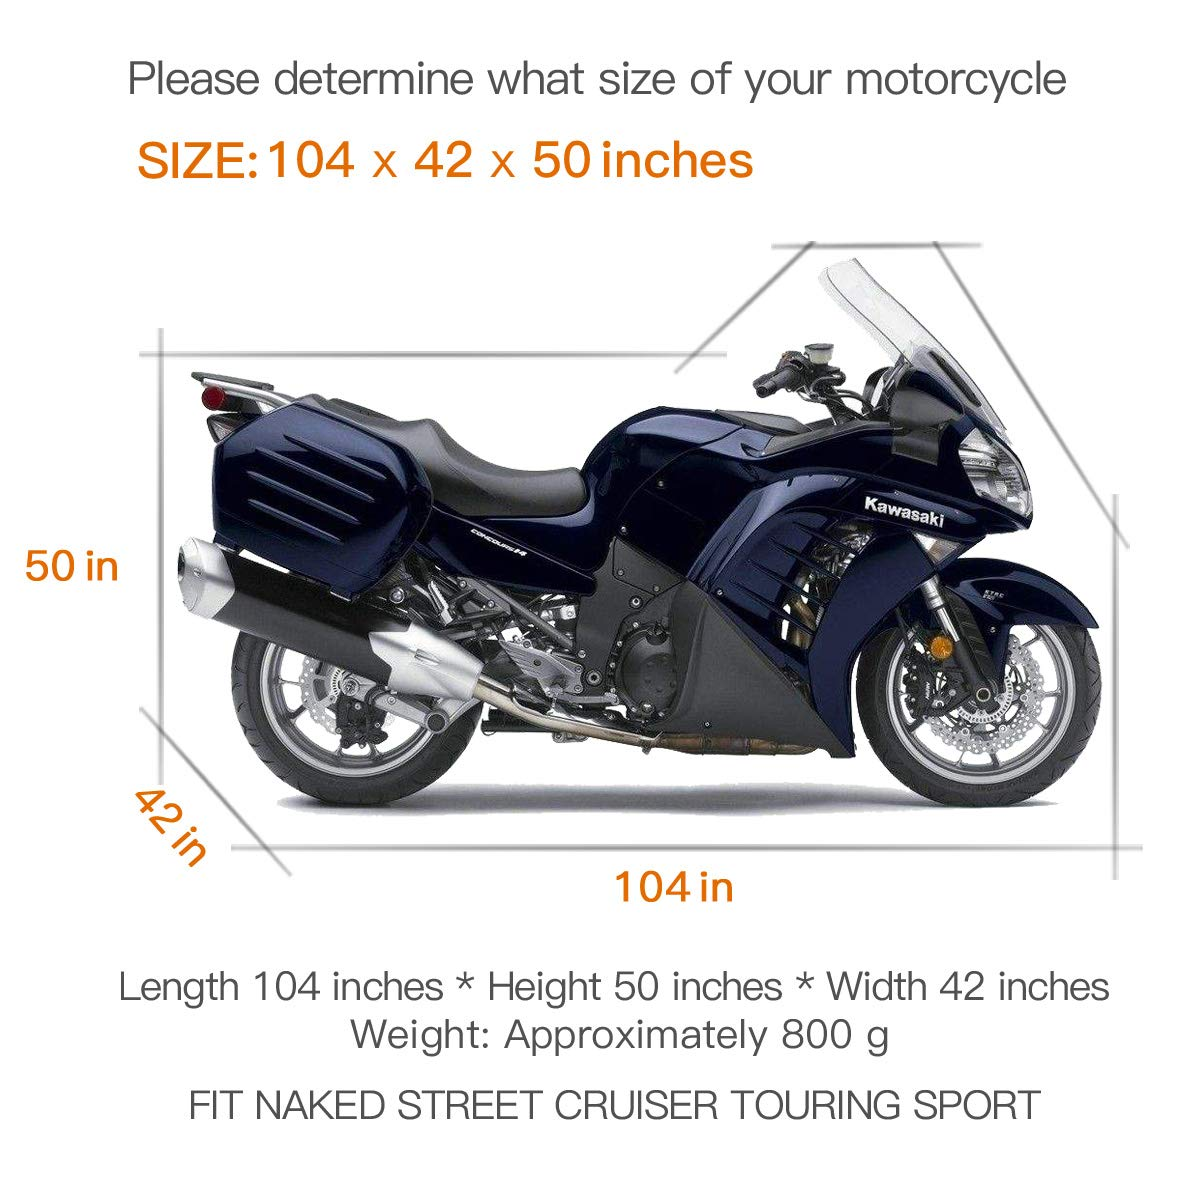 96 Inch Iptienda Waterproof Motorcycle Cover,XX-Large Windproof Motorbike Dust Cover All Weather Outdoor Protection,210D Oxford Durable with Storage Bag for Harley Davidson Motorcycles Vehicle Cover